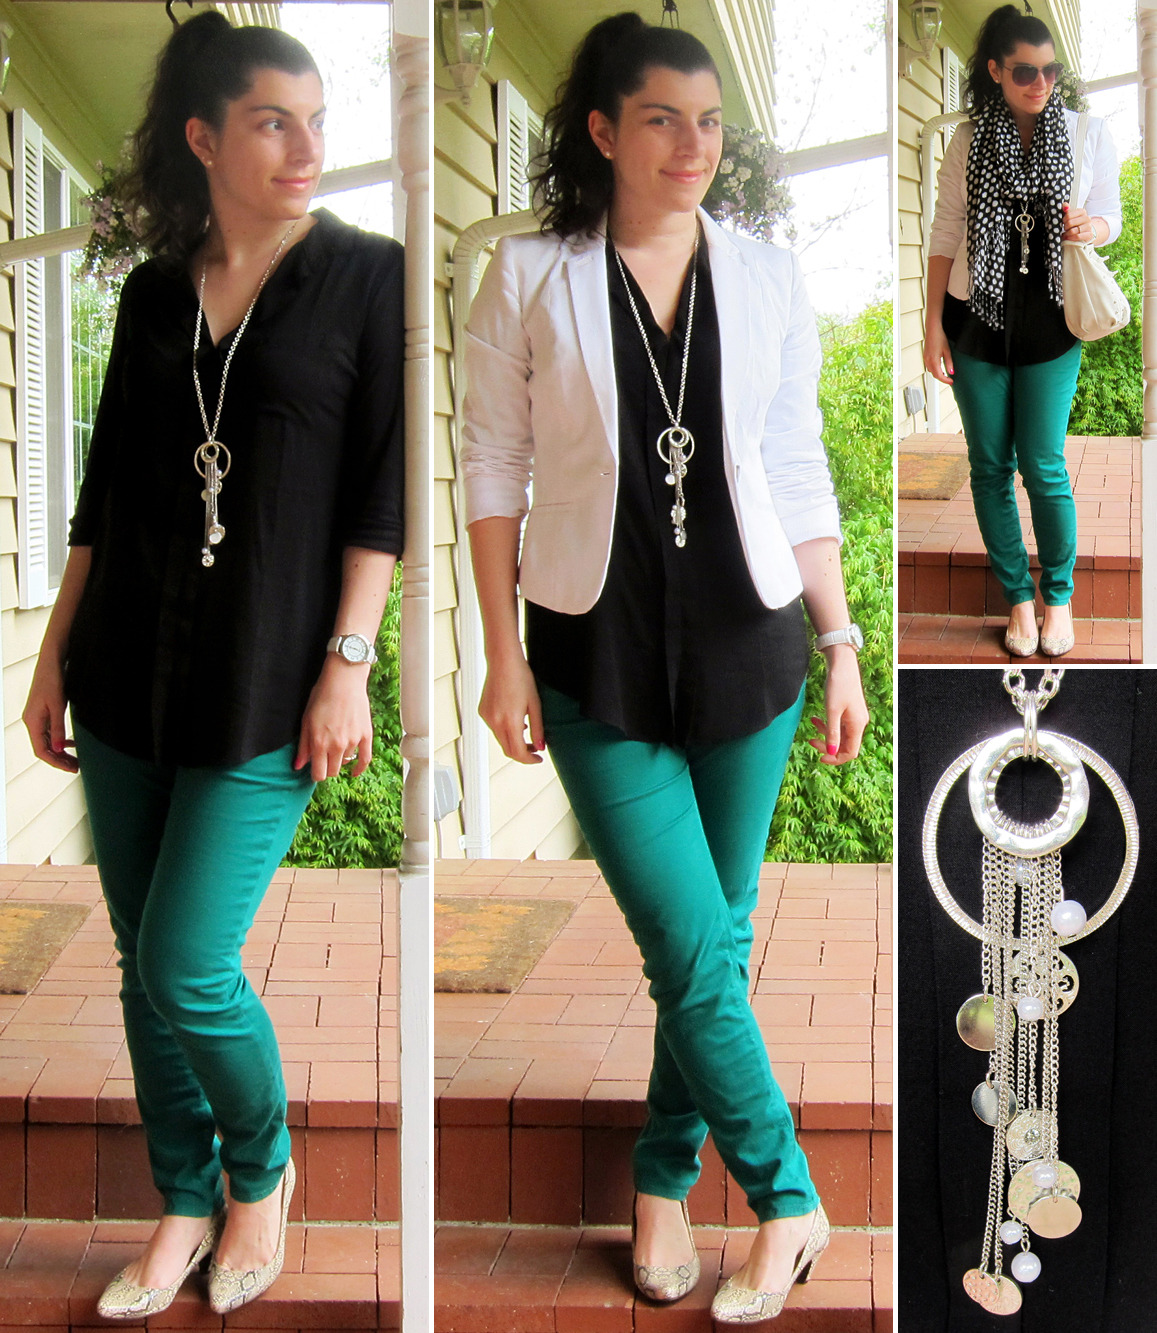 04.25.2012 [wed]Backlogged outfit, added 02.08.2013. Worn to: work, dinner @ Kindah's w/Michael Thoughts:Picked up this fun pendant a couple days ago from LOFT, and this is the color combo that made me want green jeans for this season. It all feels so very crisp! I know orange is the color of the season, but I am really feeling emerald.